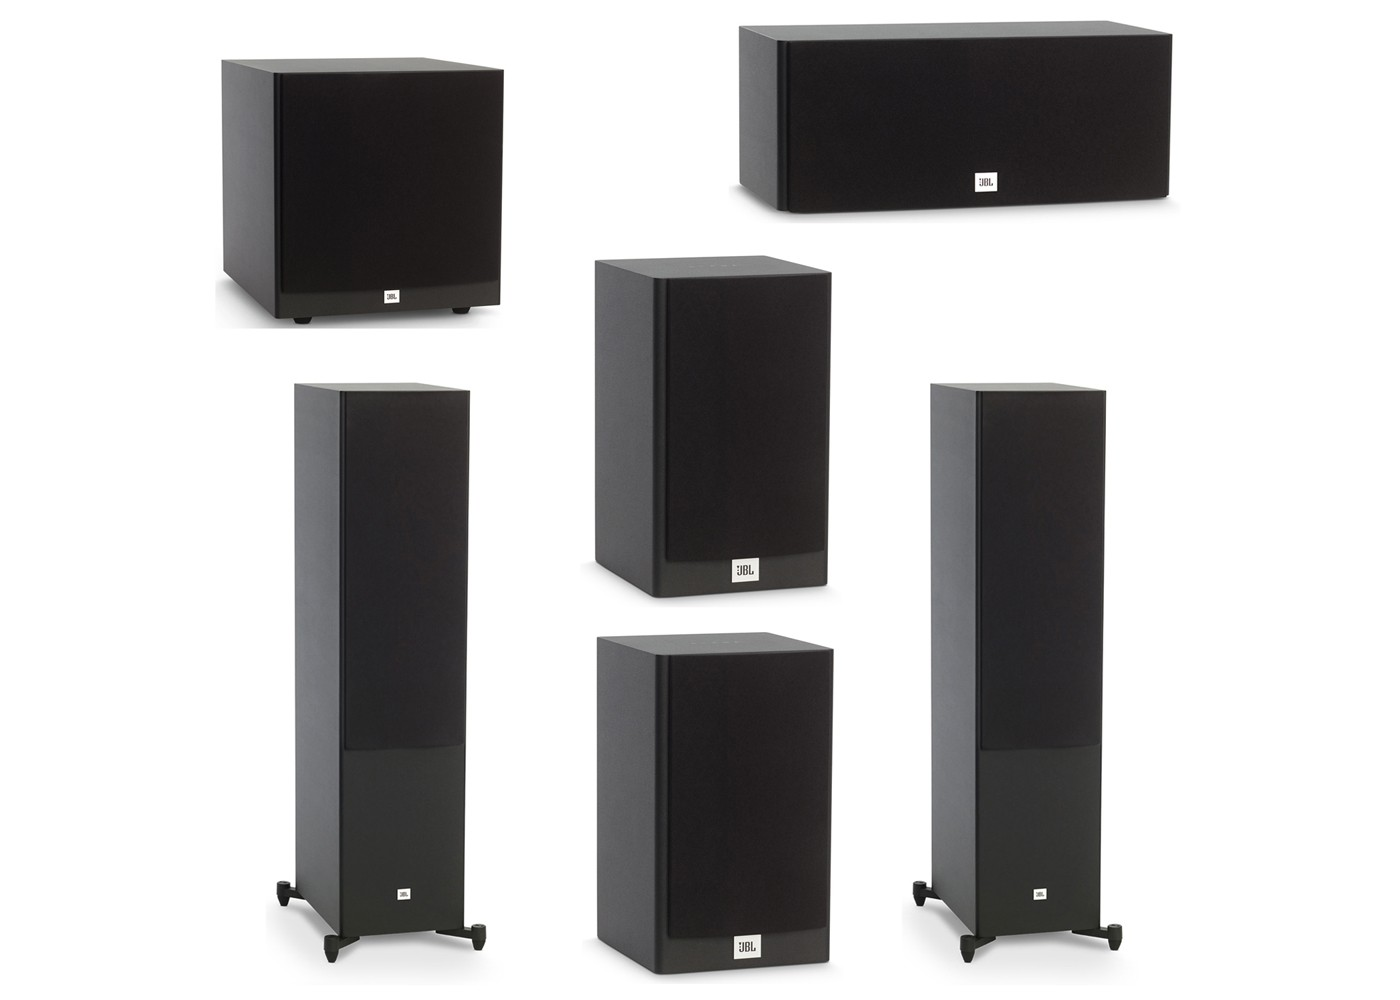 Jbl 5 1 System With 2 Jbl Stage A190 Floorstanding Speakers 1 Jbl